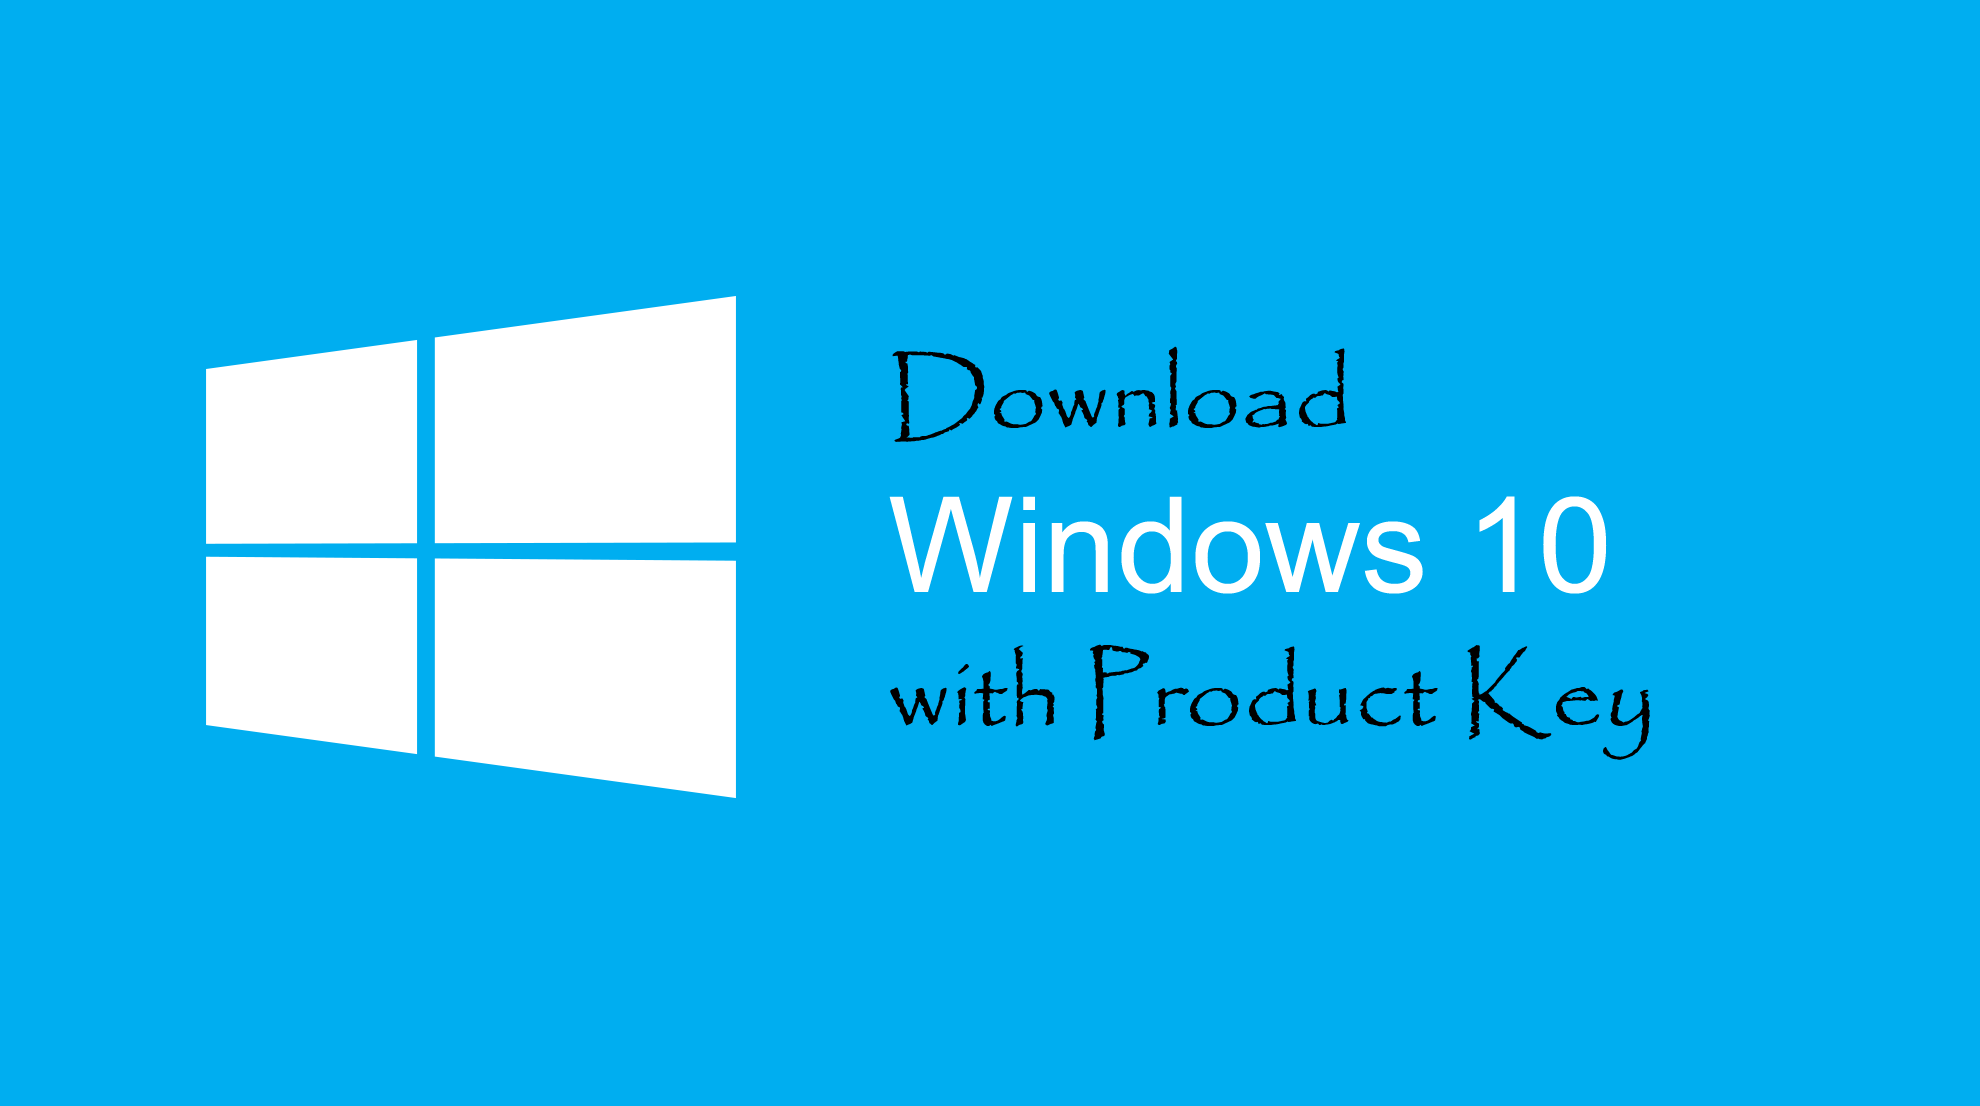 download-windows-10-key